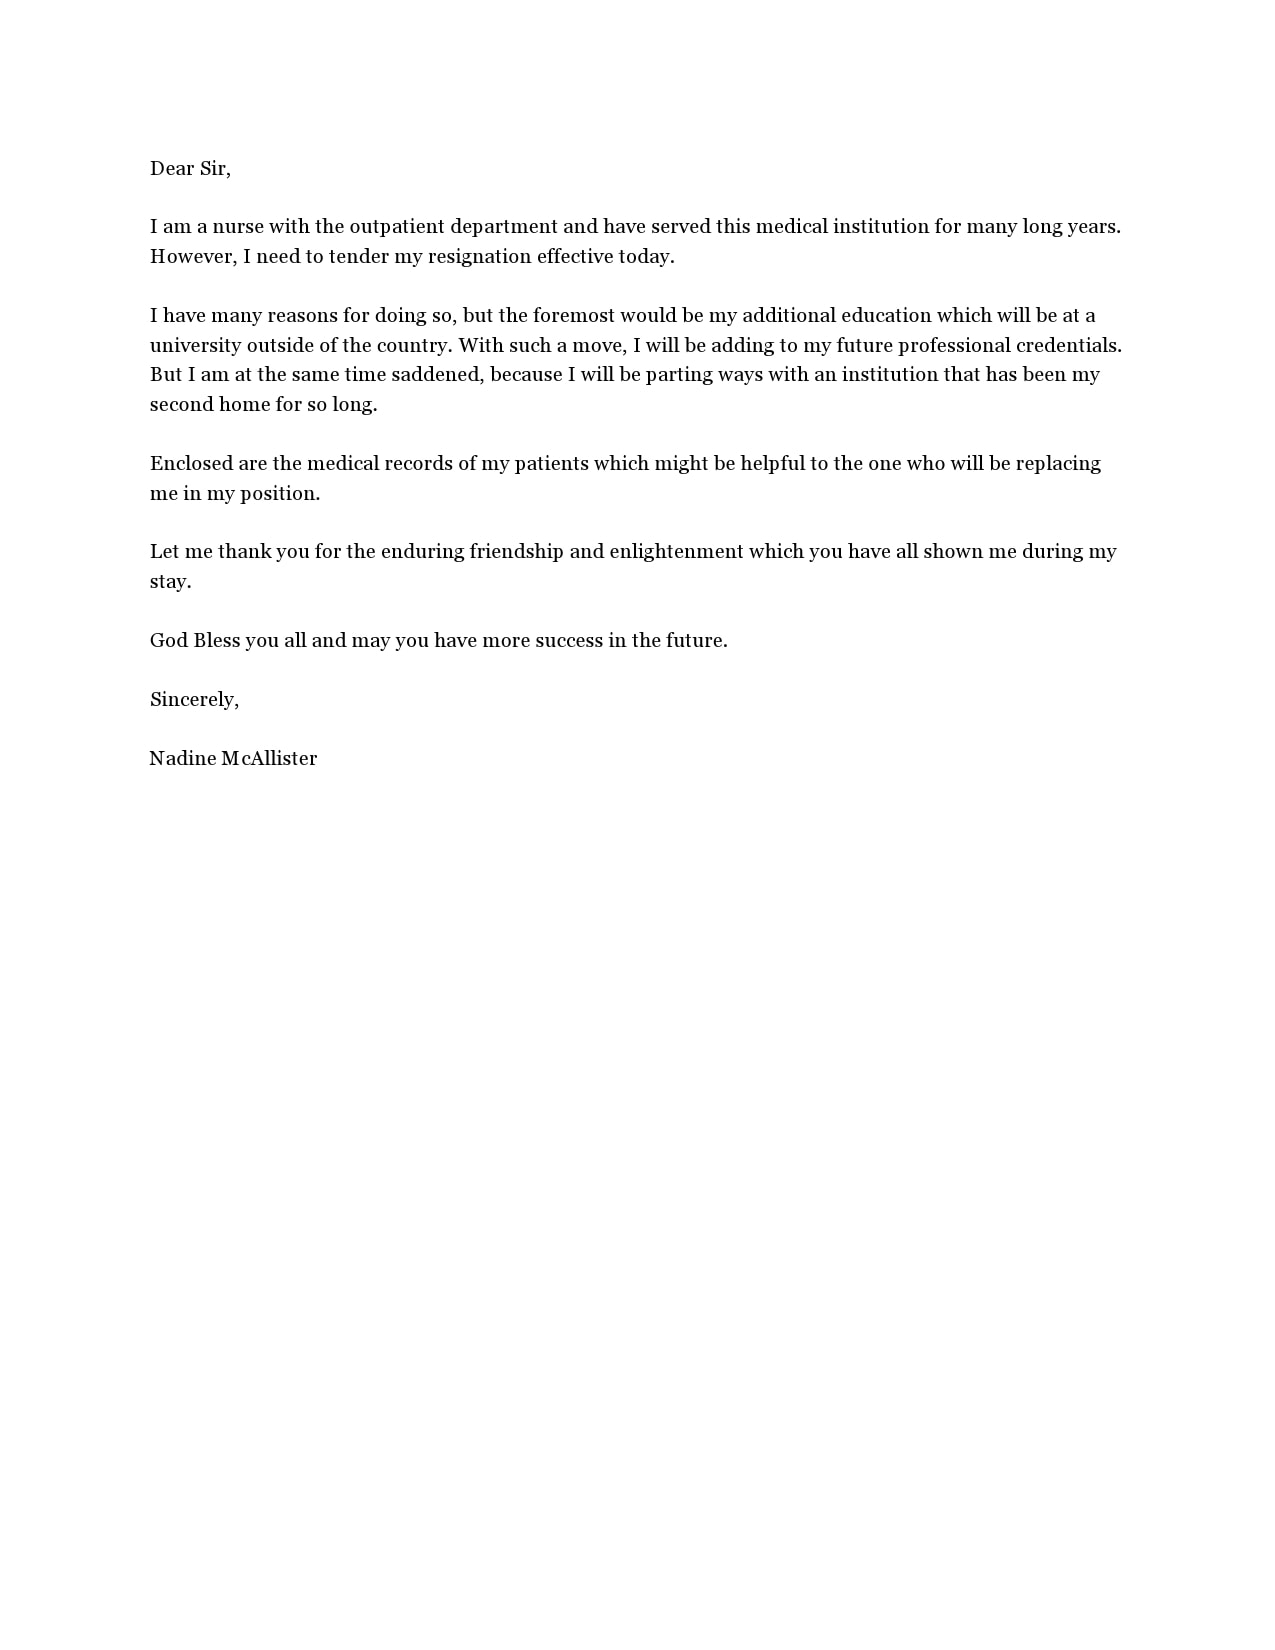 nursing resignation letter 29